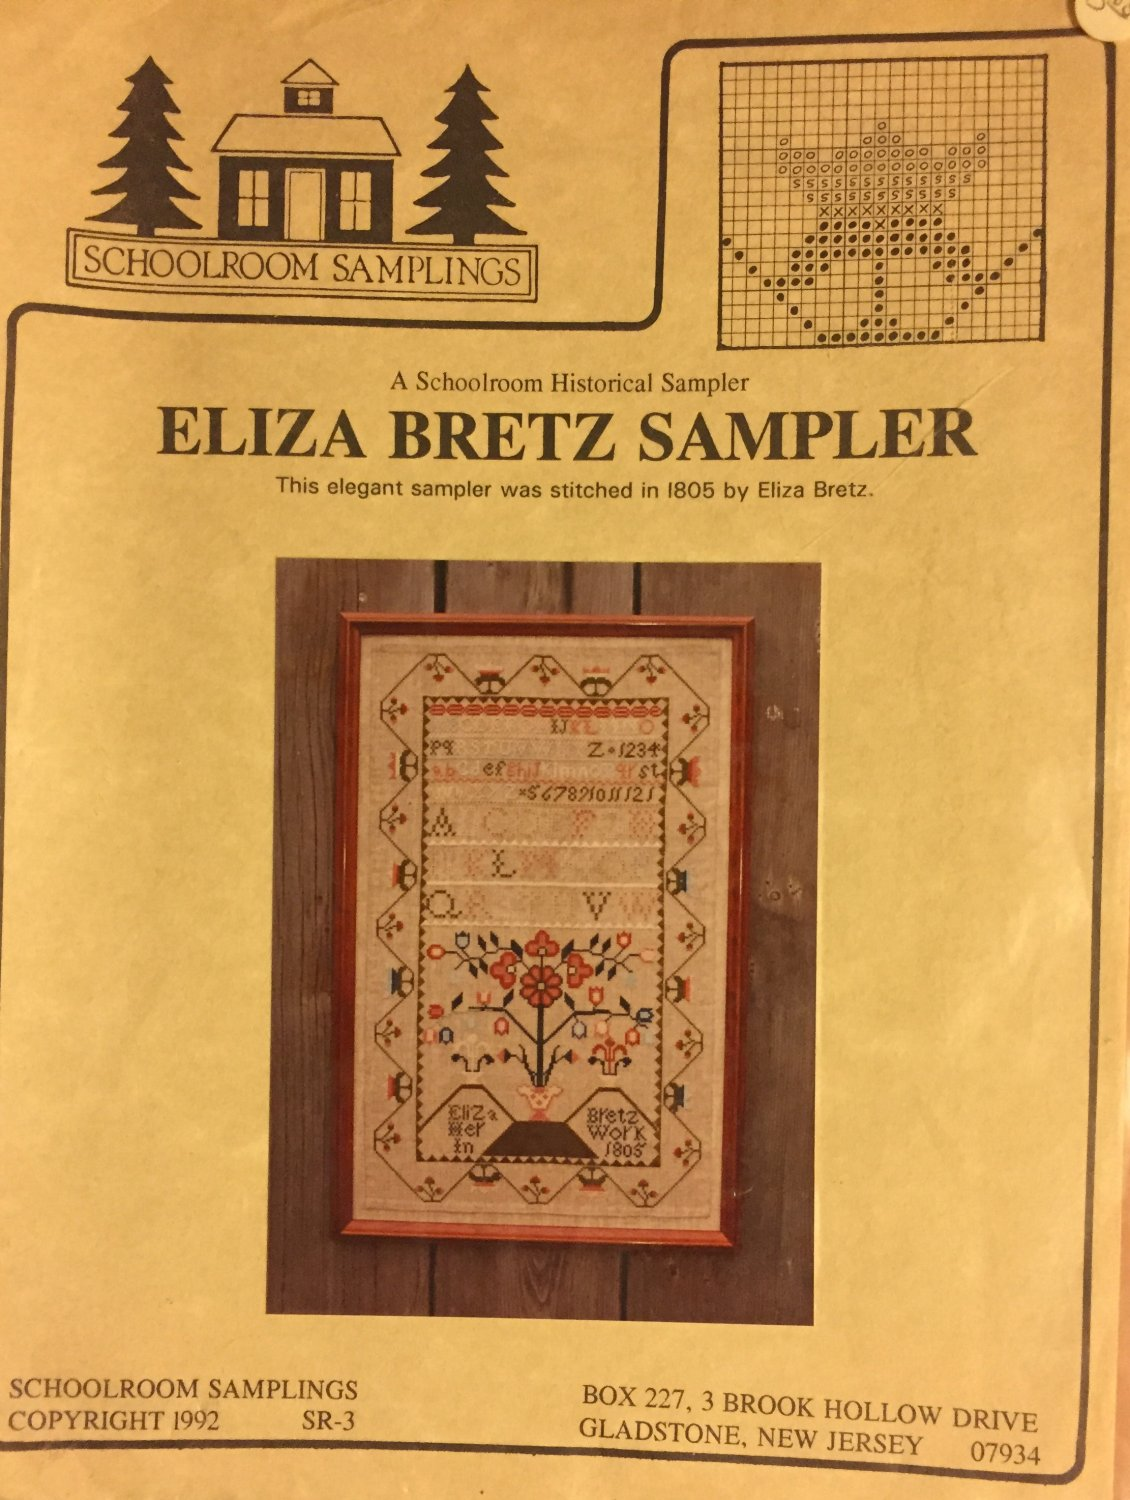 Historical Sampler Cross Stitch chart Schoolroom Samplings Eliza Bretz 1805